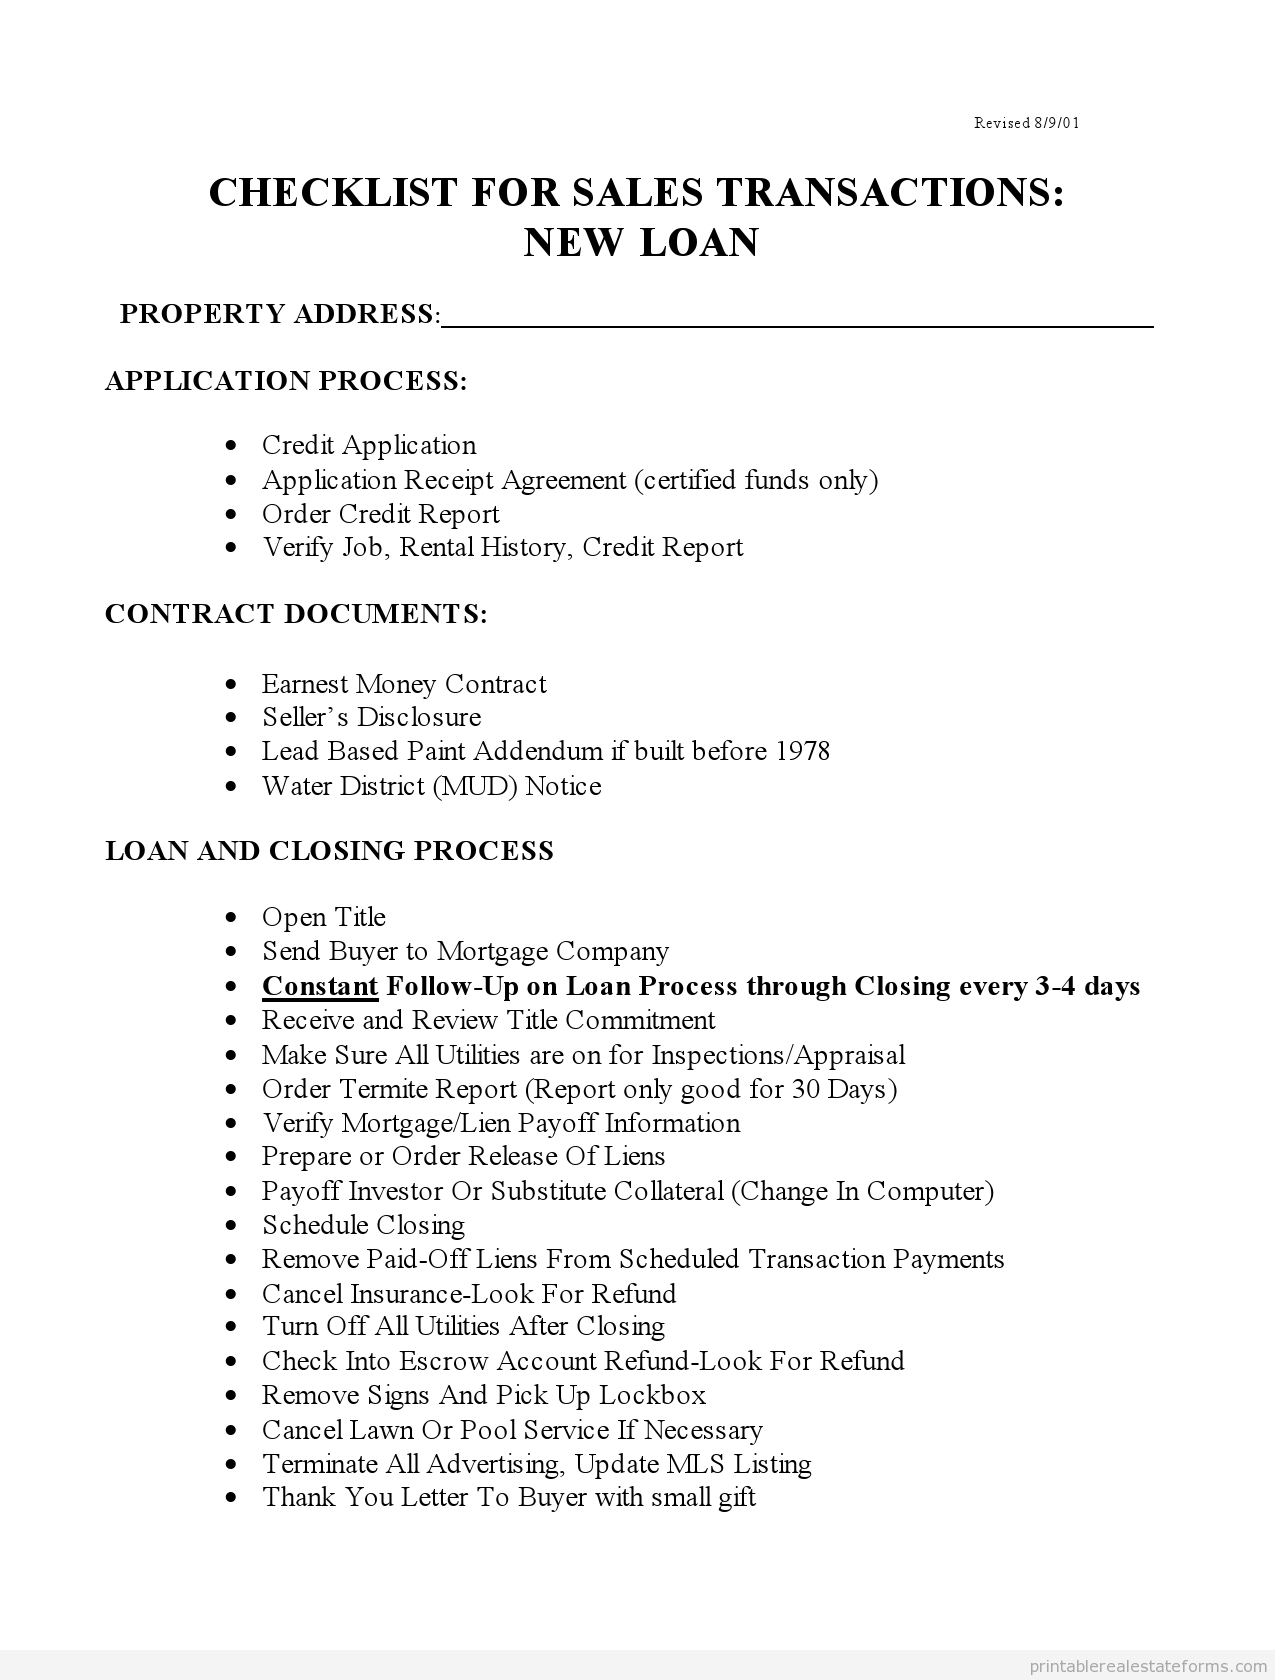 Free Printable Checklist For Sales With New Loans  Form